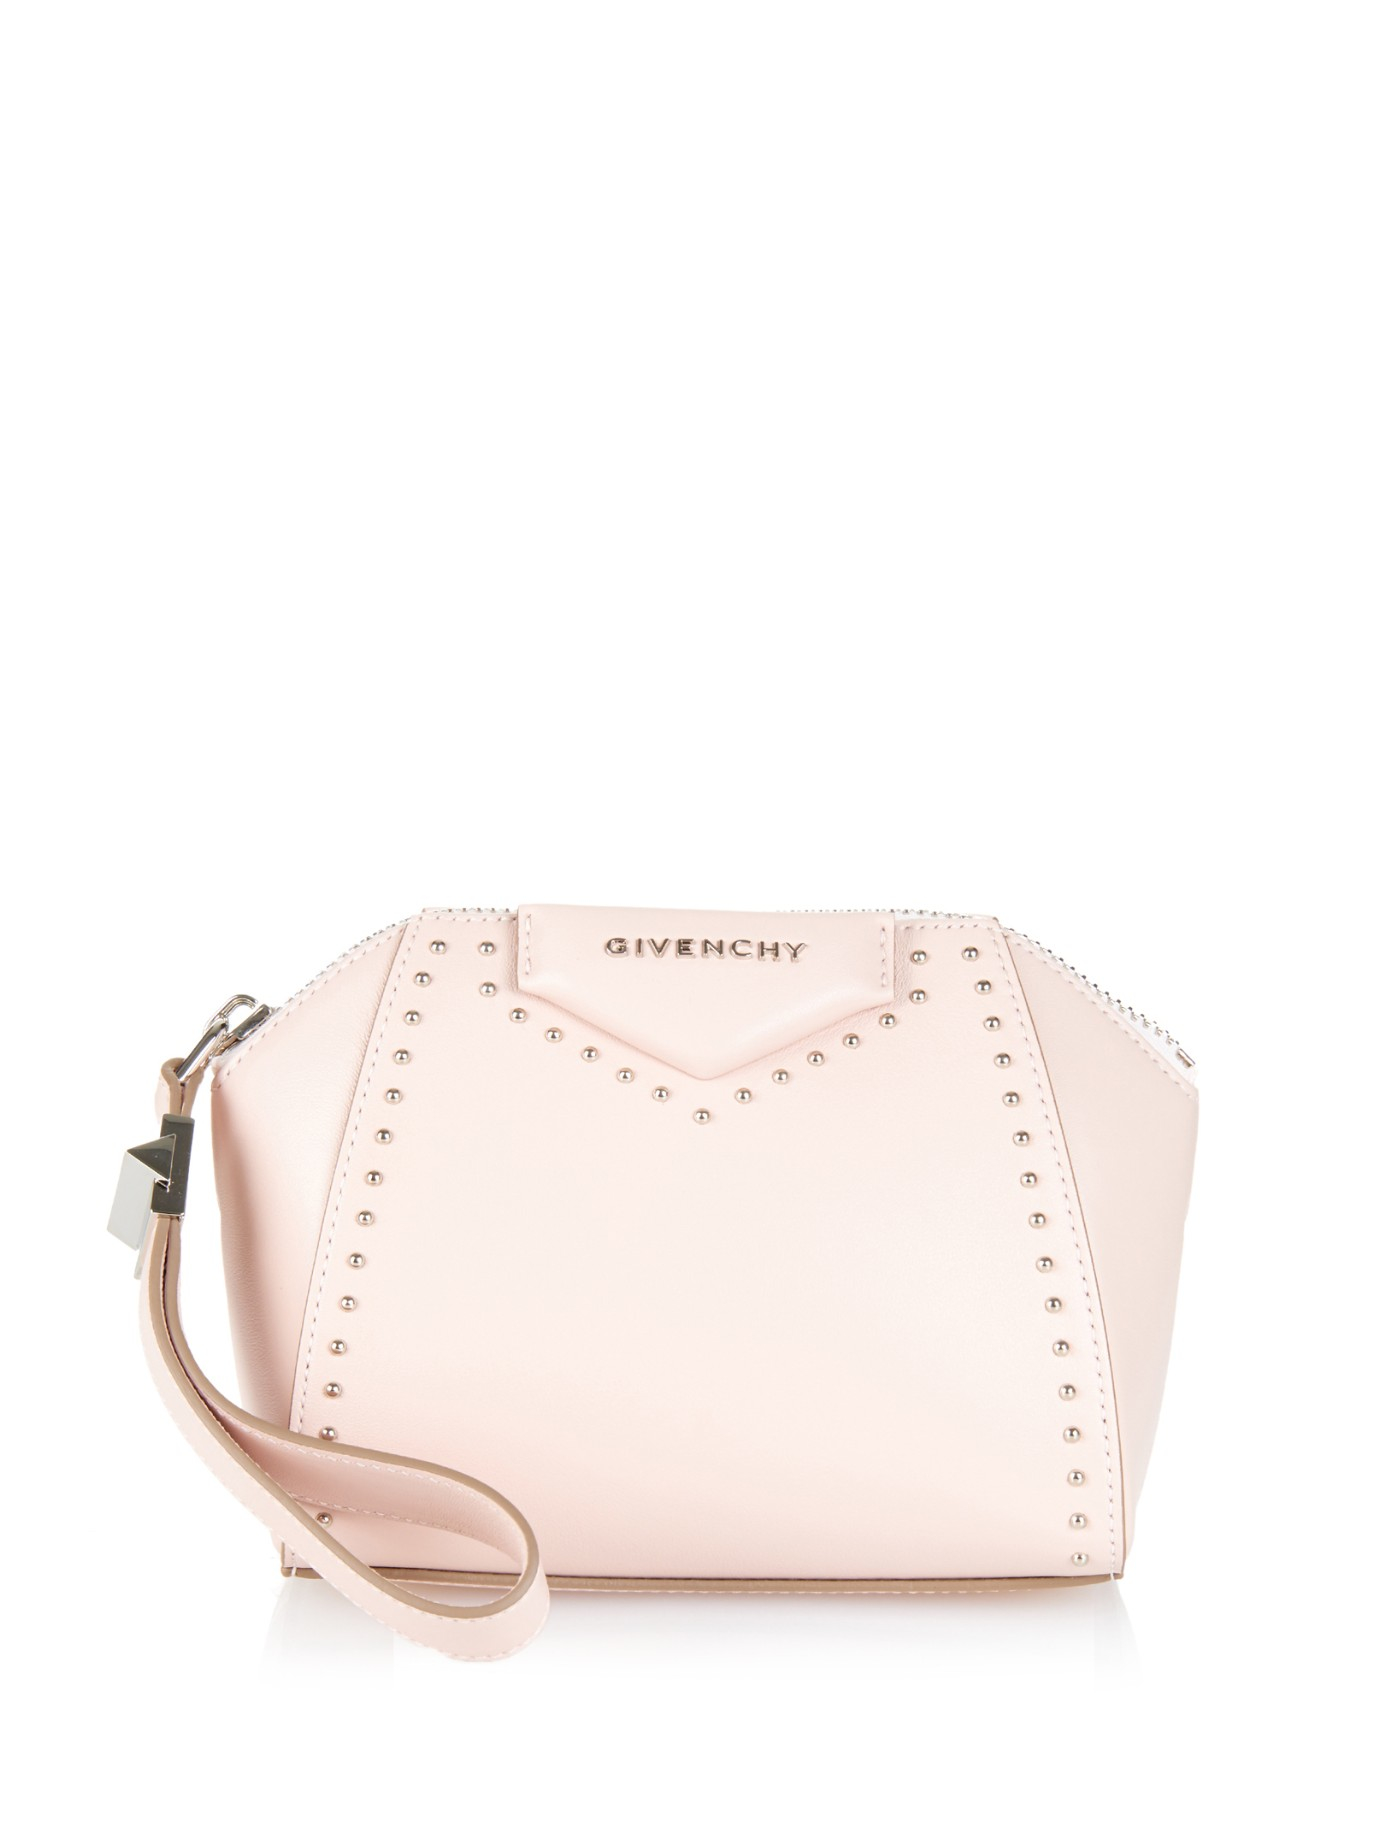 Givenchy Antigona Beauty Studded Leather Clutch in Pink | Lyst